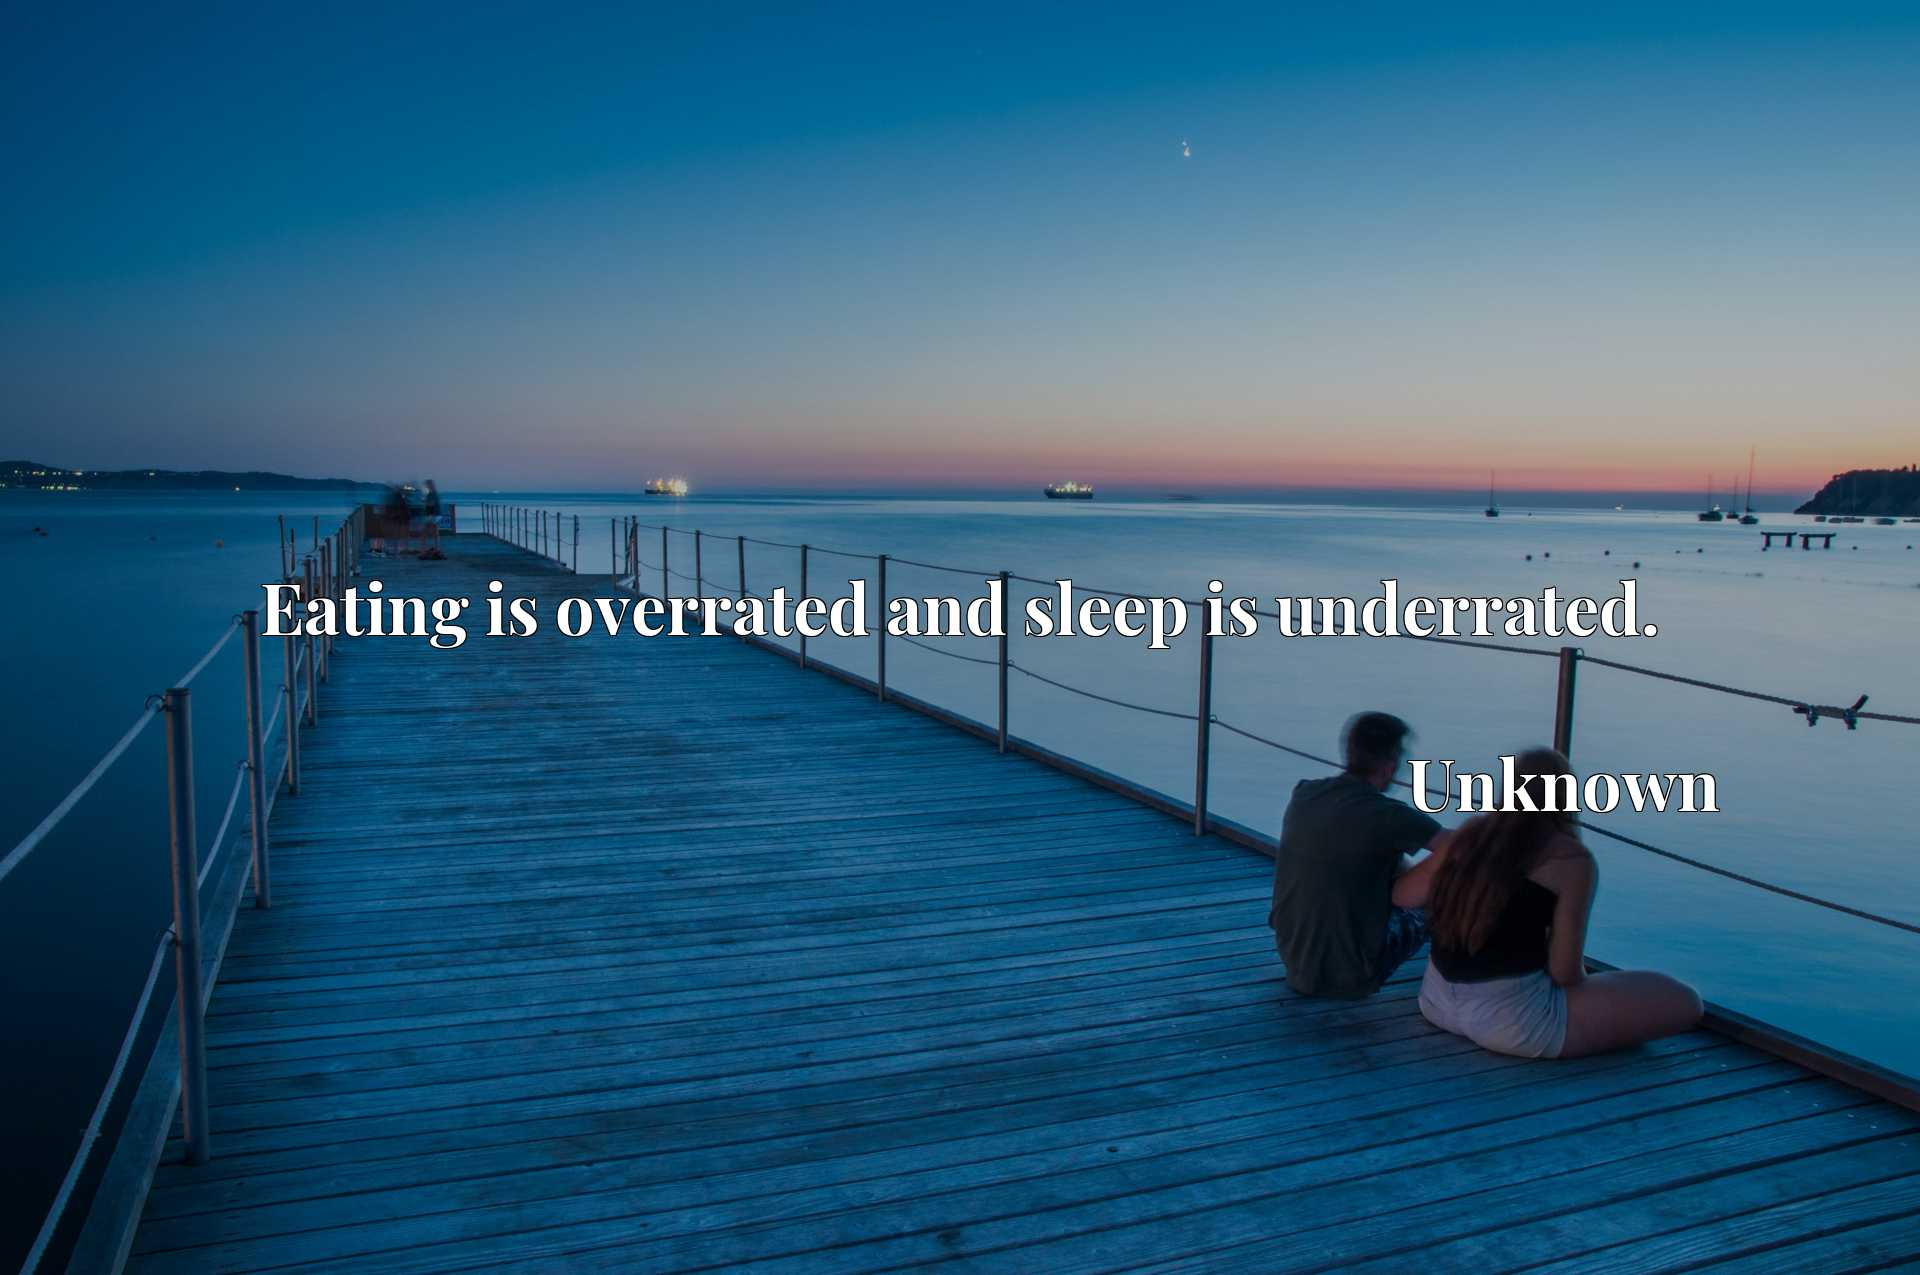 Eating is overrated and sleep is underrated.